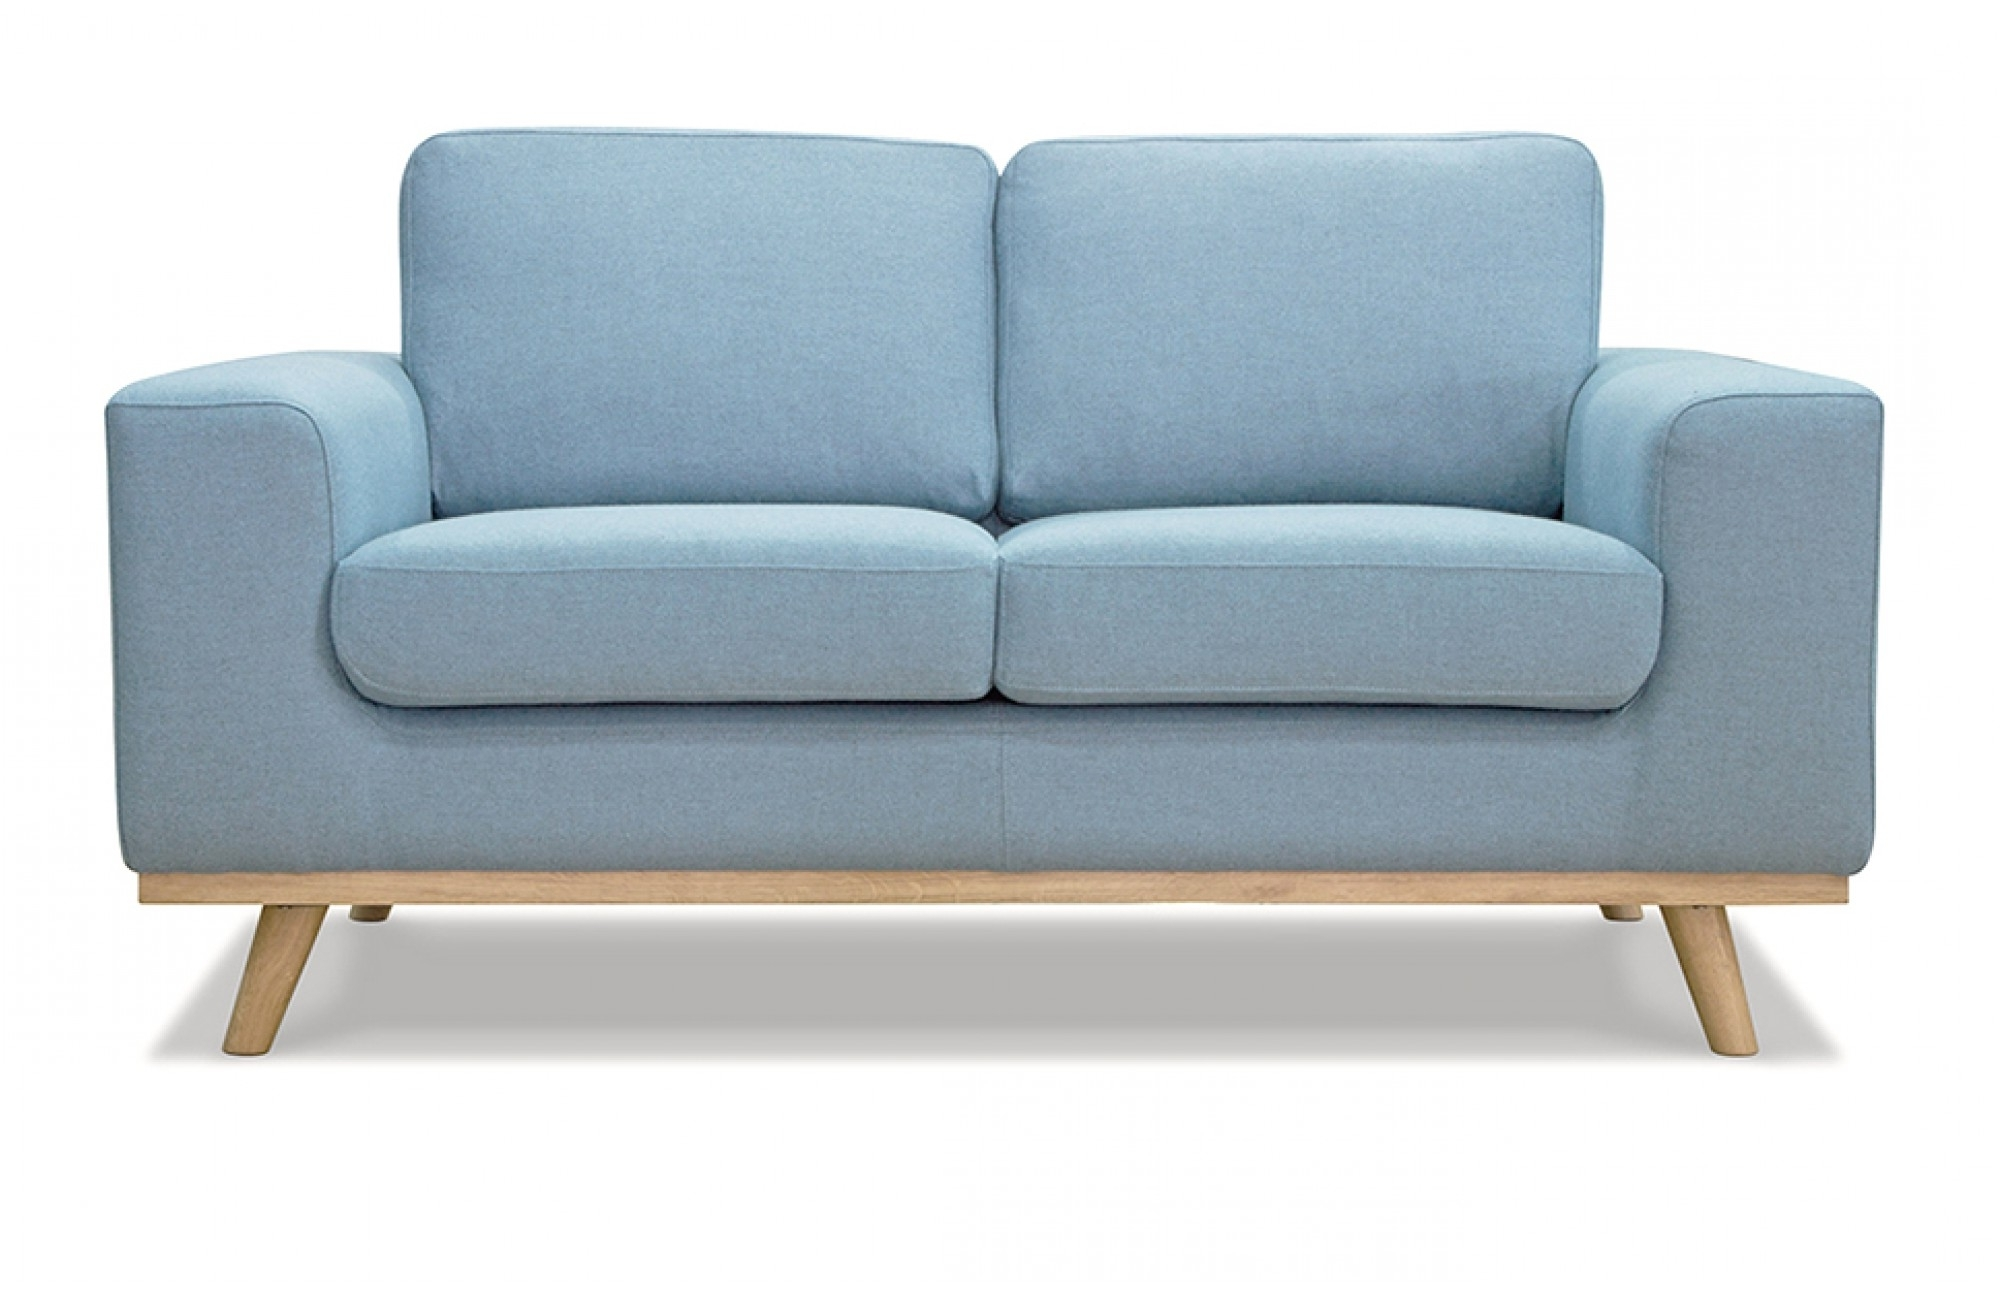 Two Seater Sofas For Current 2 Seater Blue Sofa – Lounge Furniture – Out & Out (View 14 of 15)